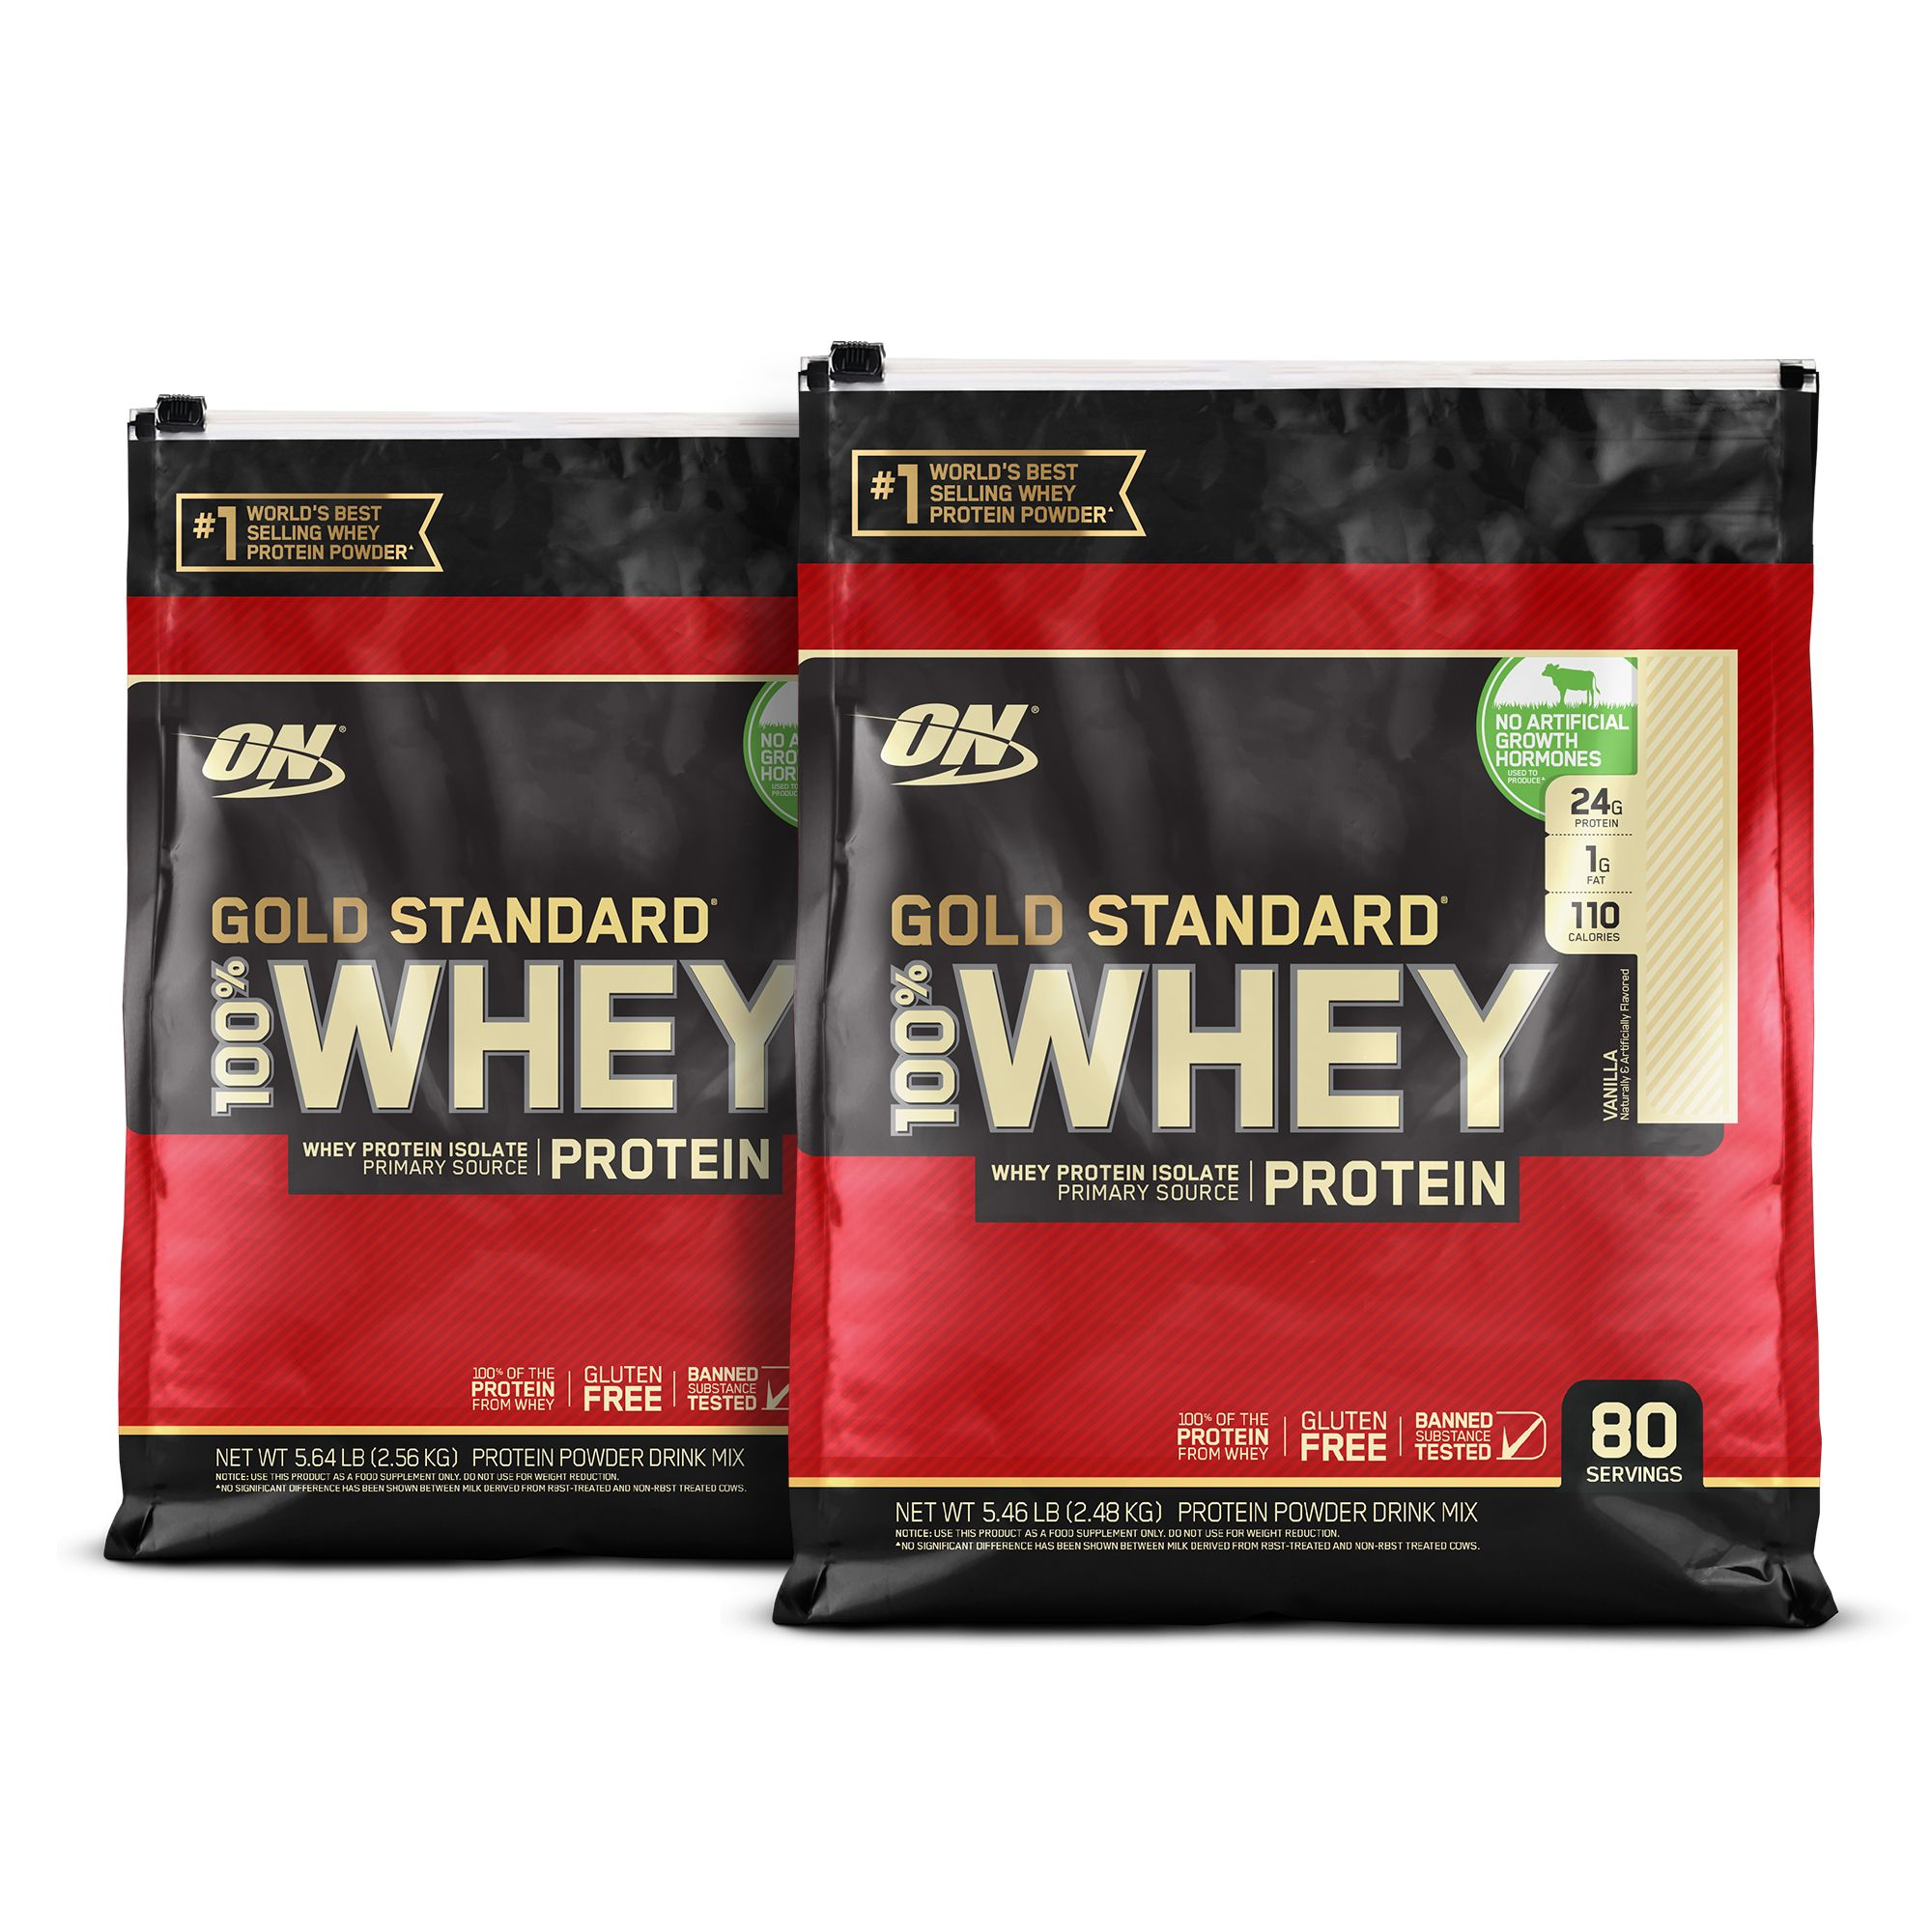 c470e2c90 The True Strength of ON GOLD STANDARD 100% WHEY™ Protein